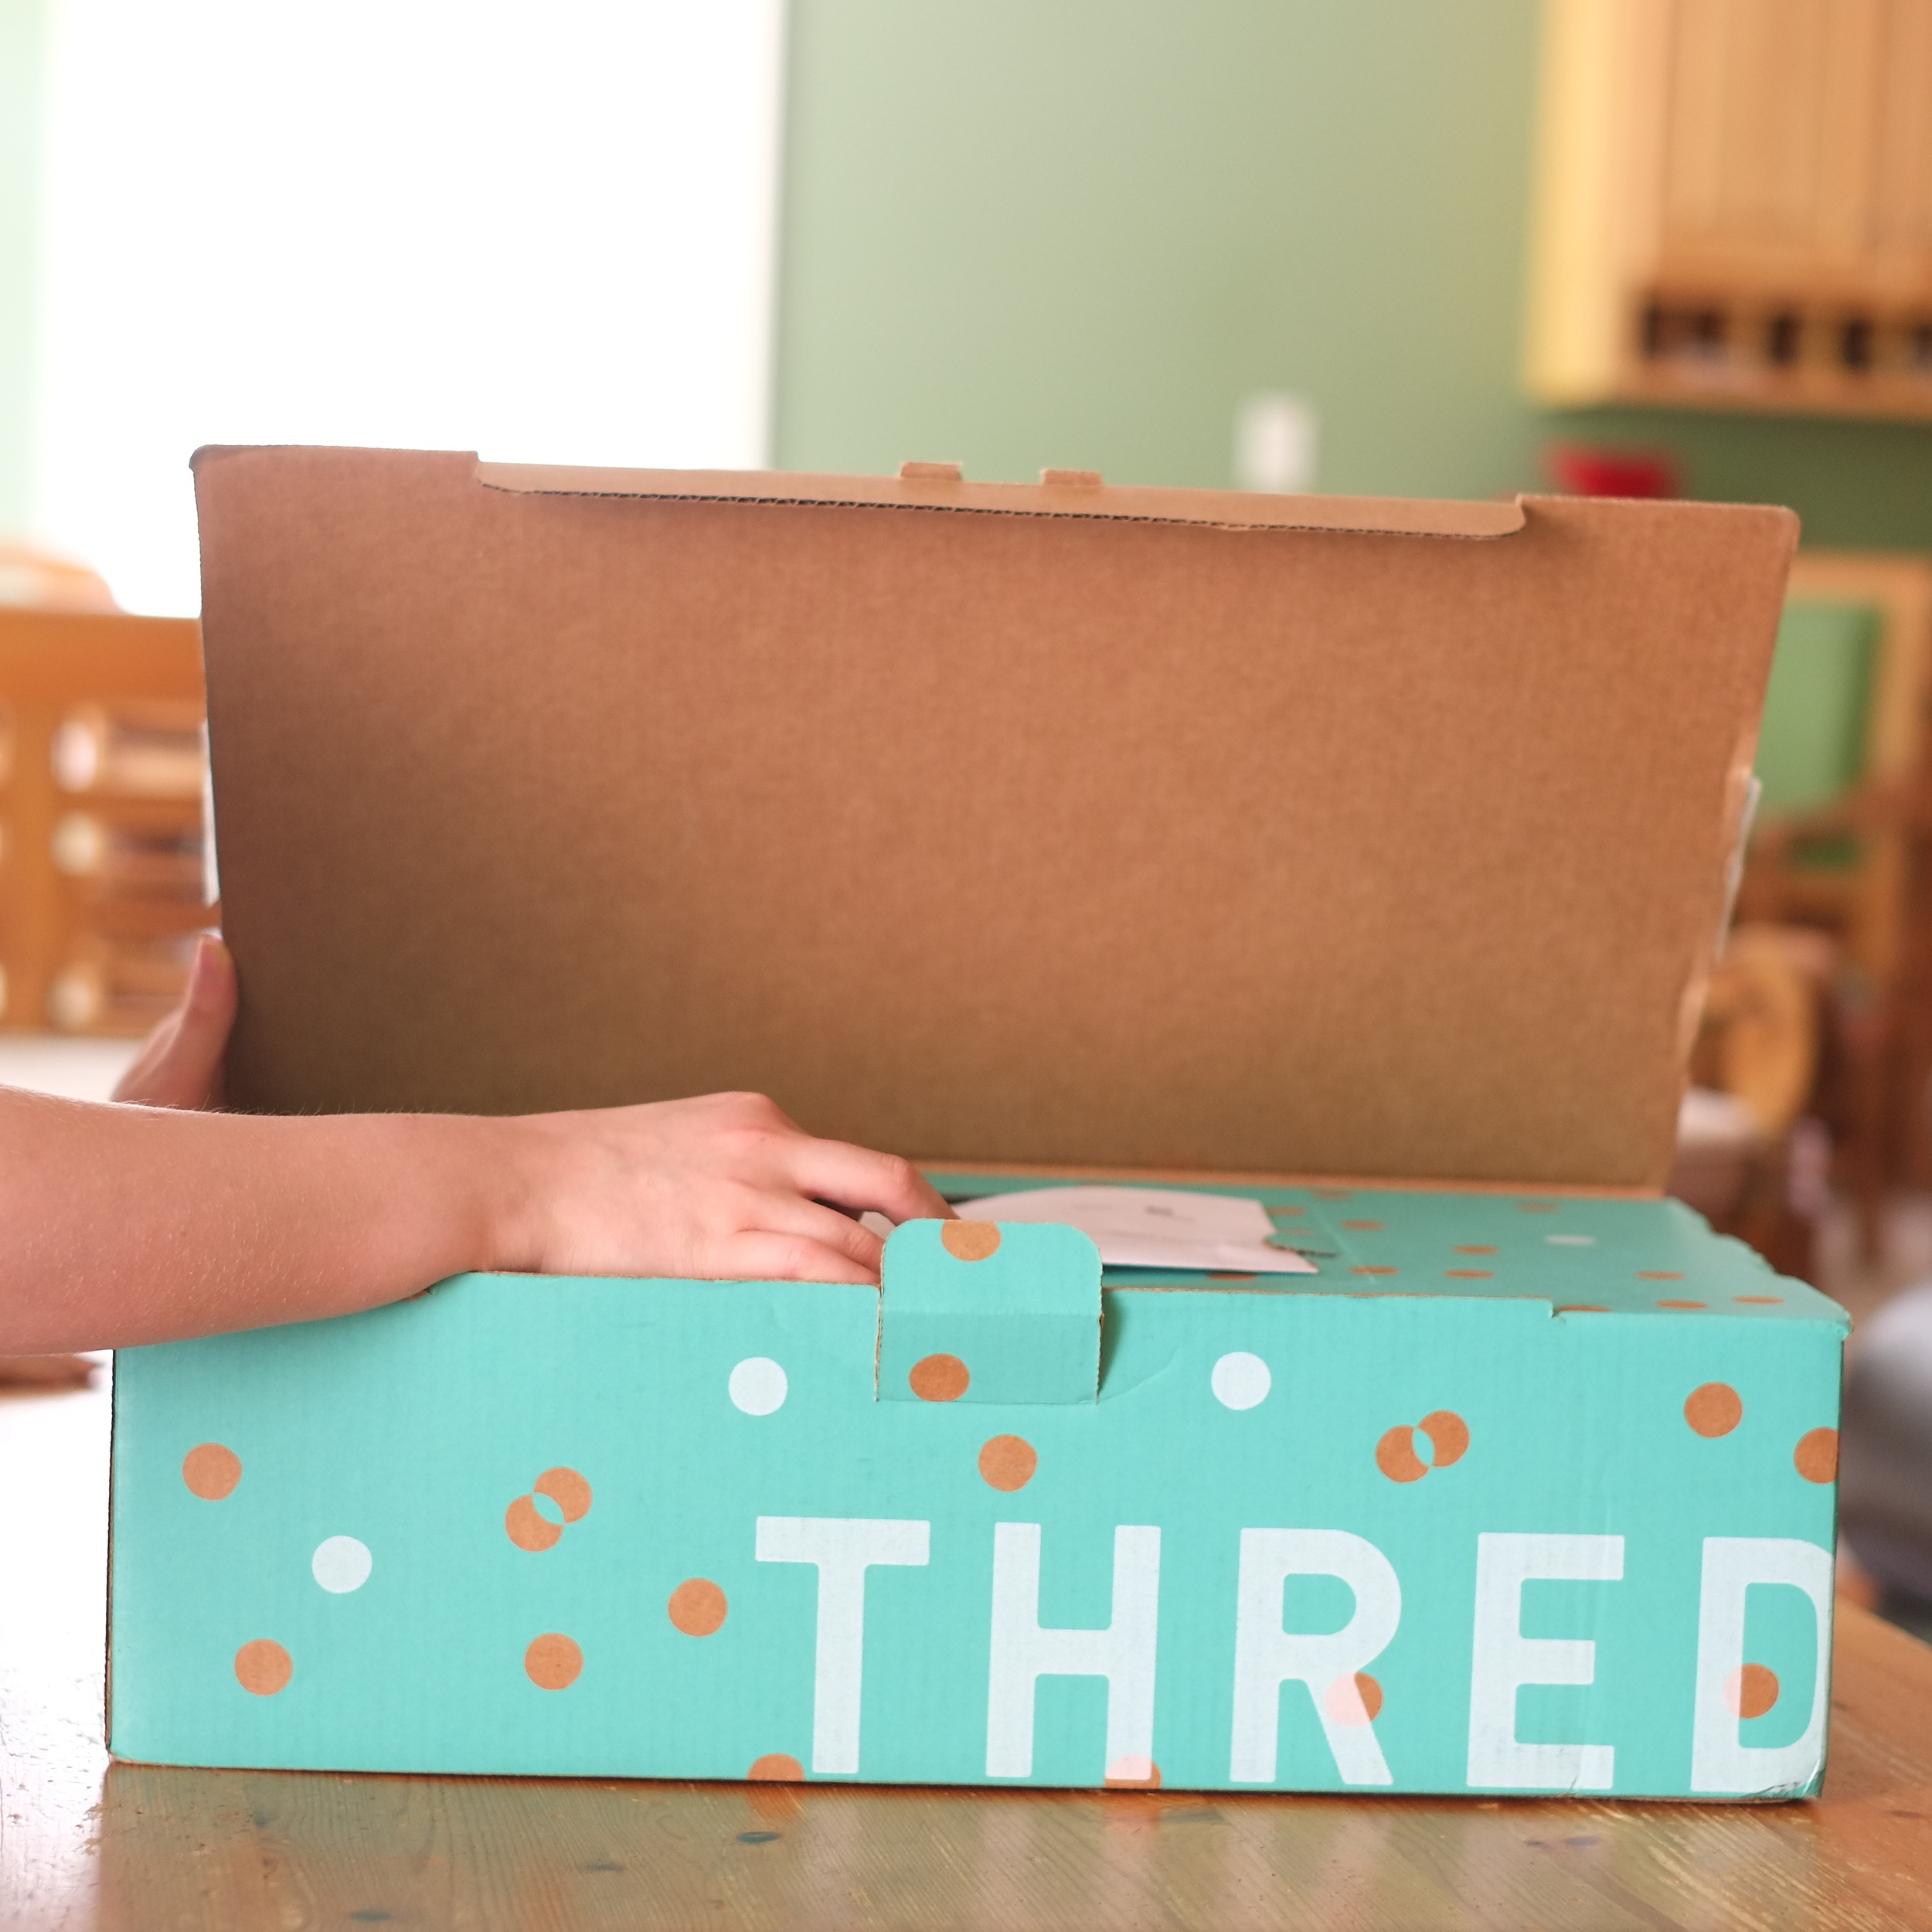 Unboxing our ThredUp clothing order